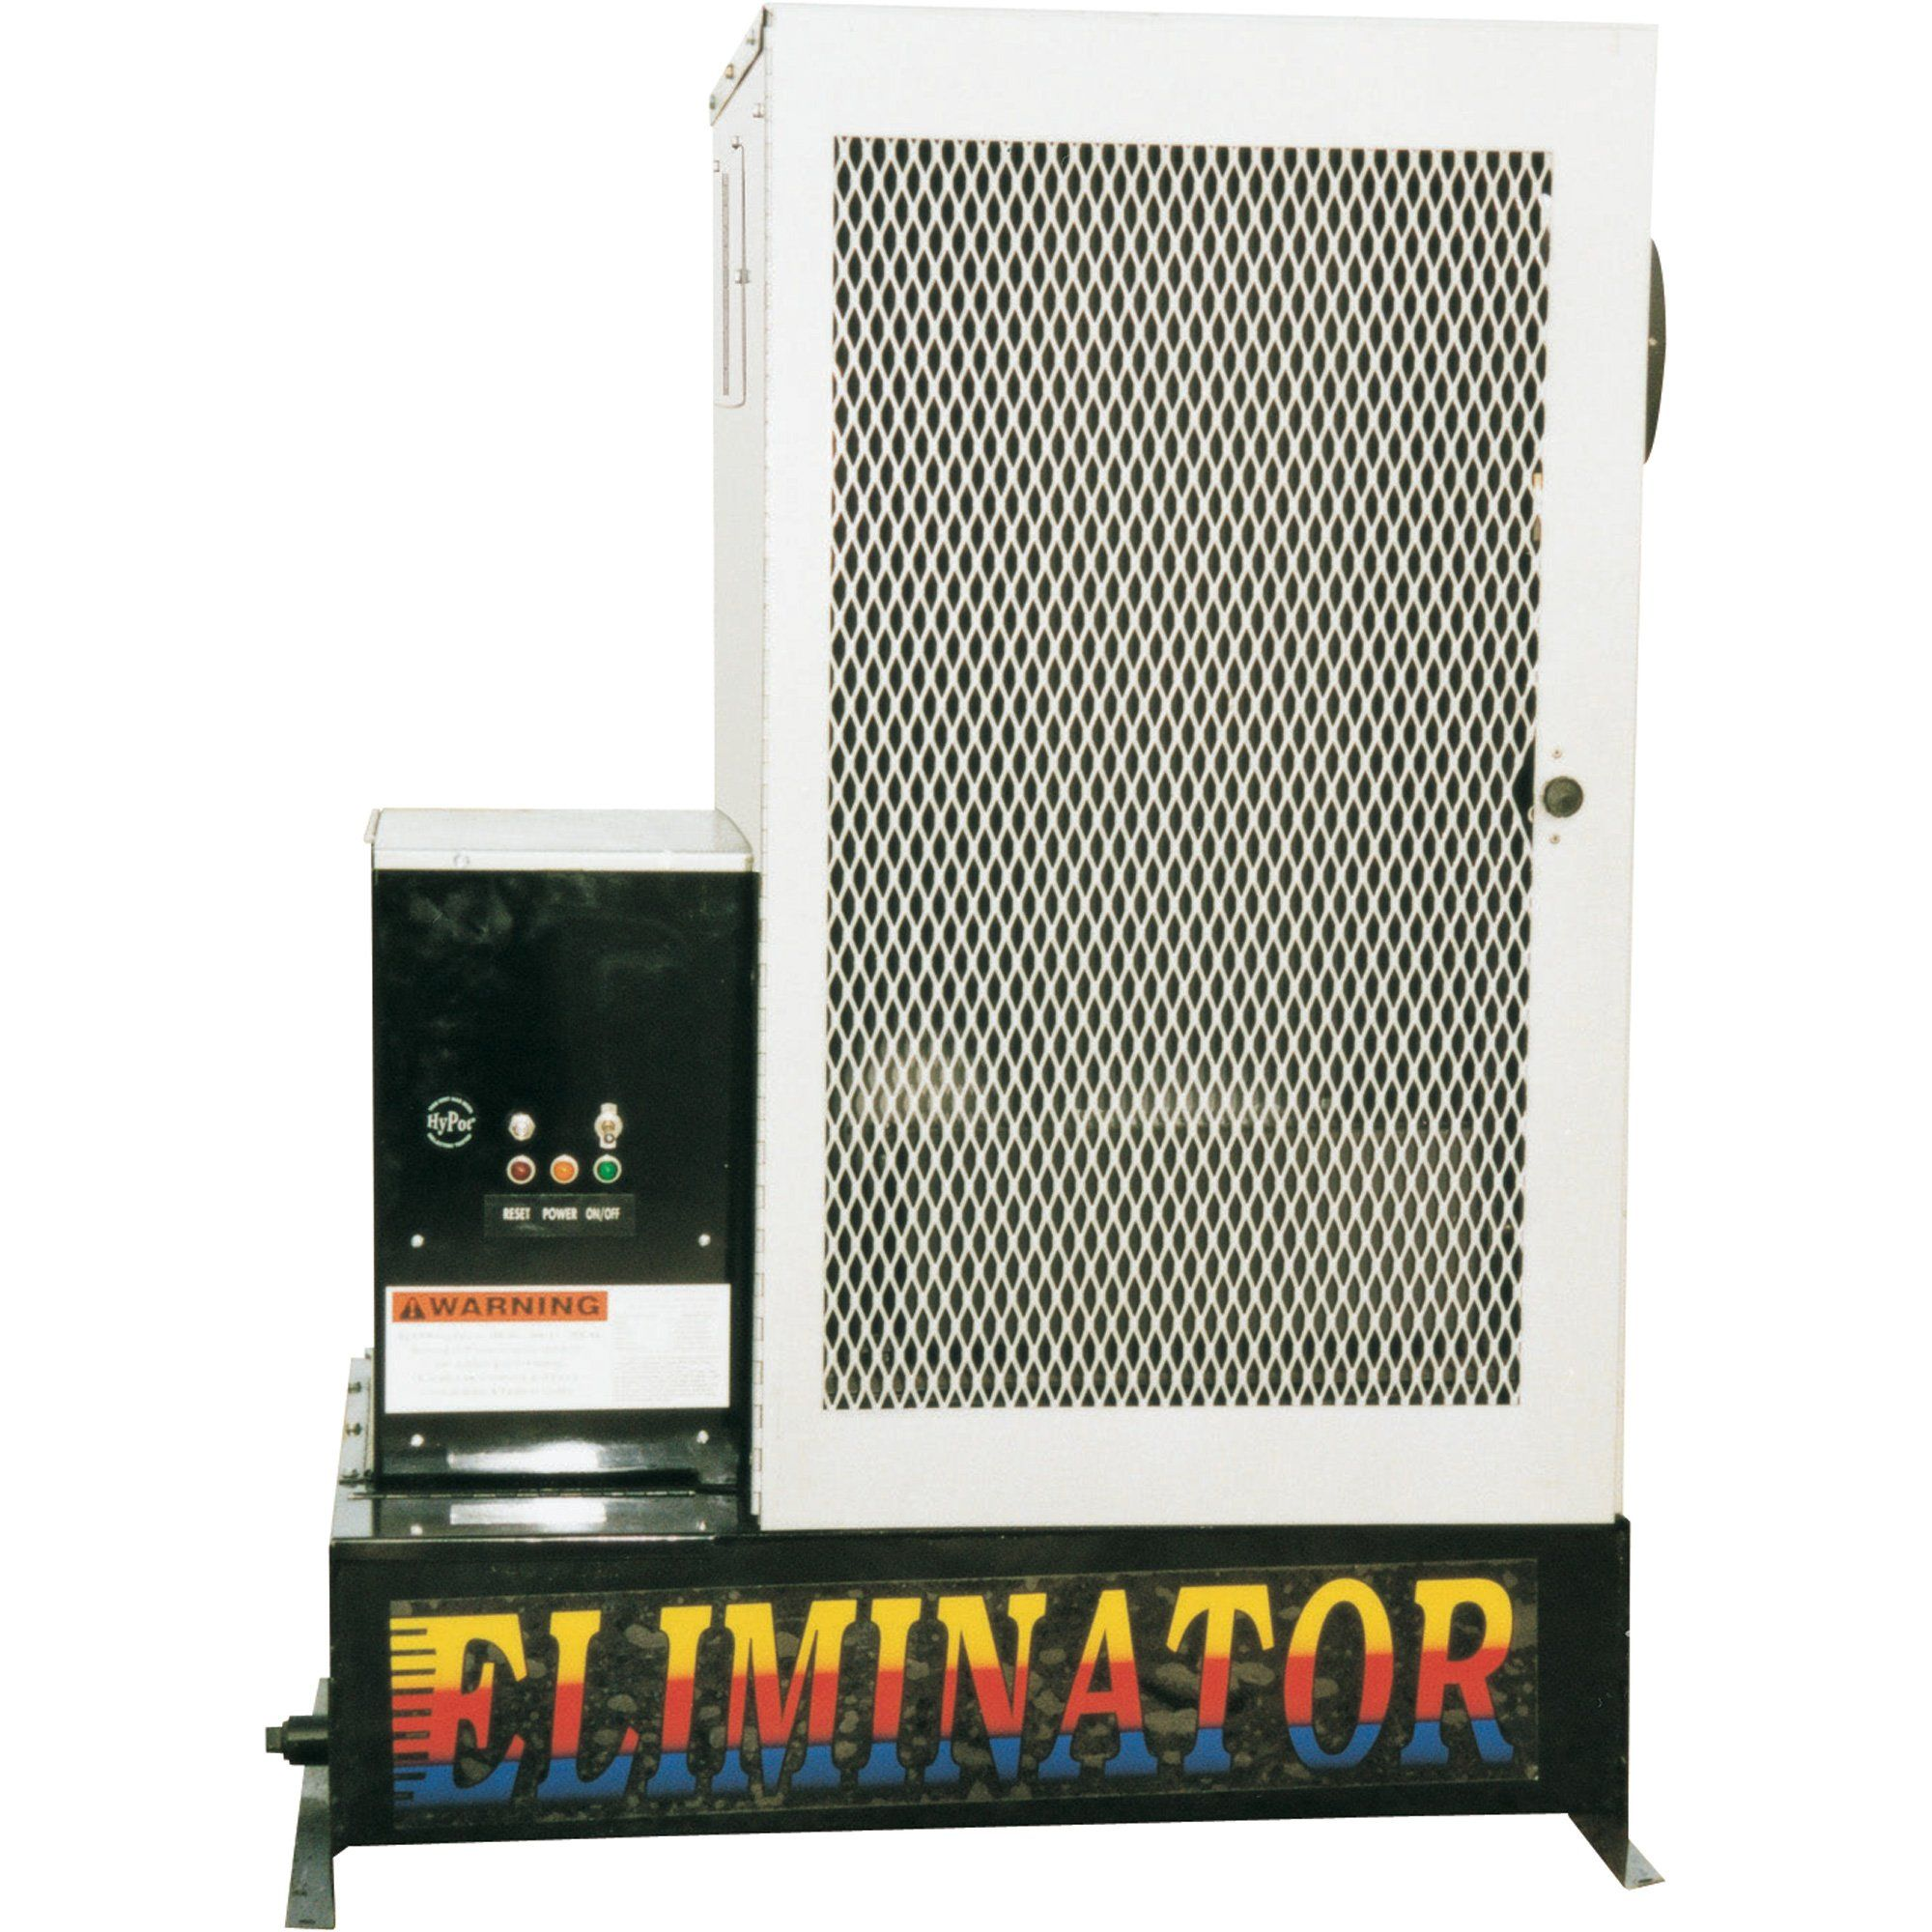 Do Your Part Eliminator Shop And Garage Waste Oil Heater 120 000 Btu Oil Heater Shop Heater Heater